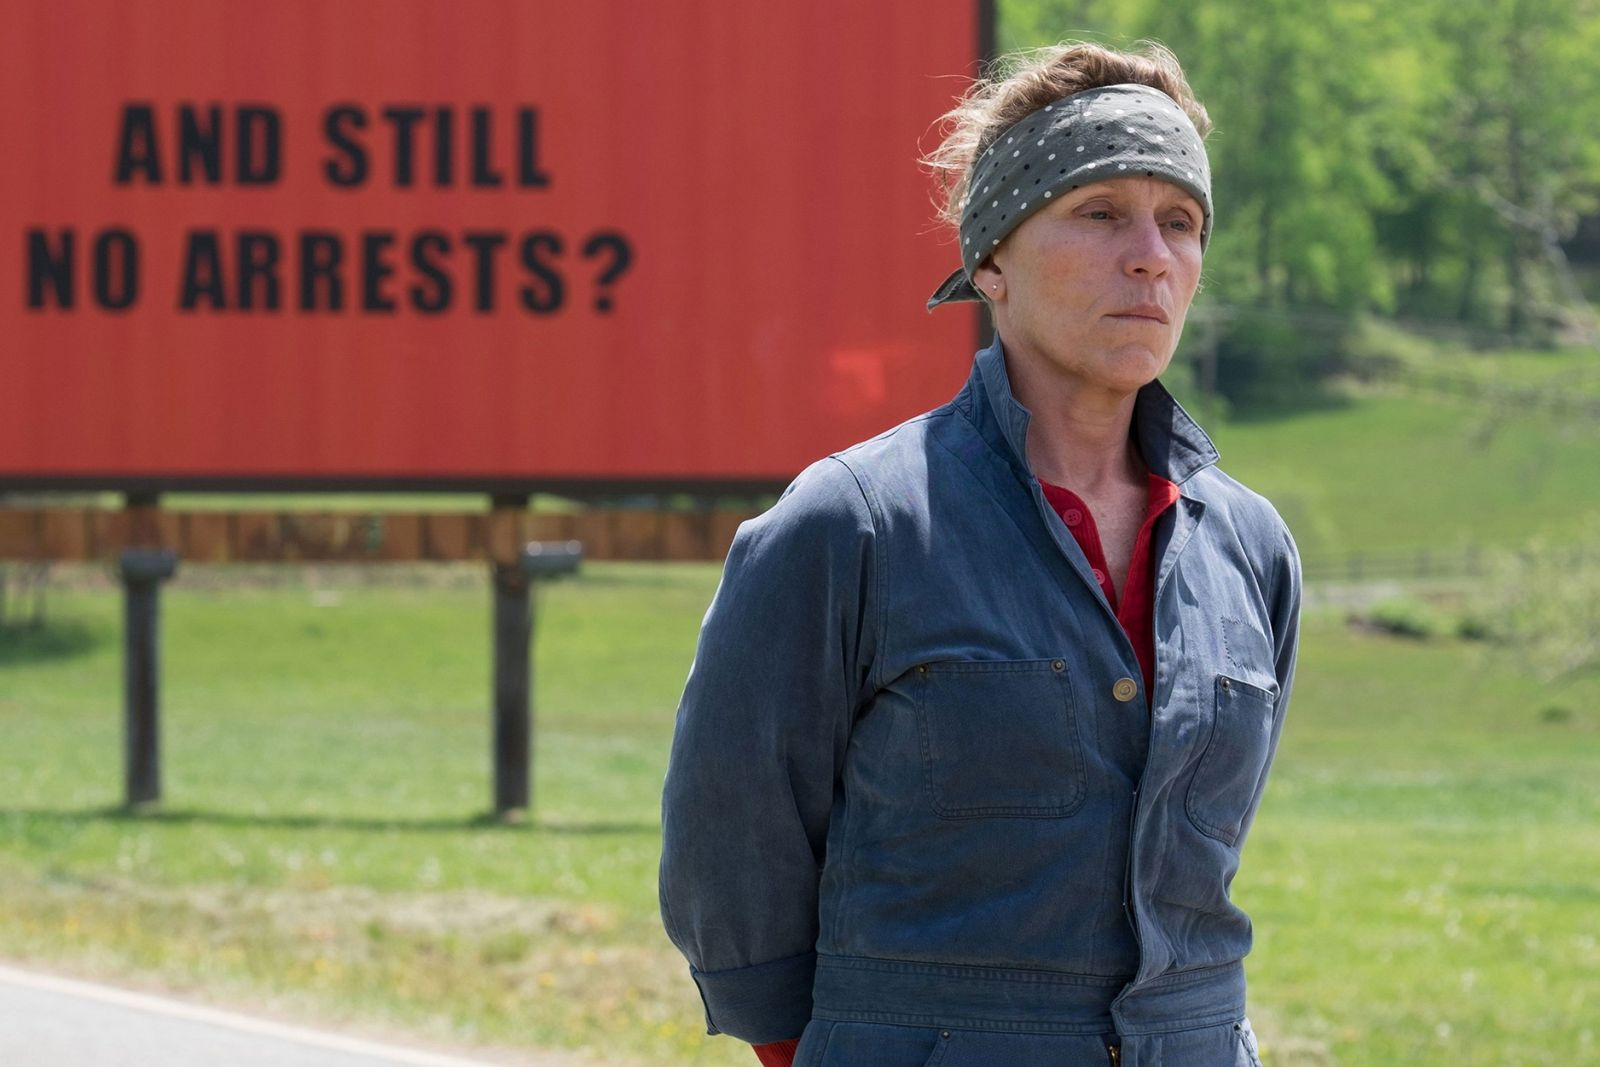 Mildred Hayes from The Three Billboards on the Border of Ebbing, Missouri